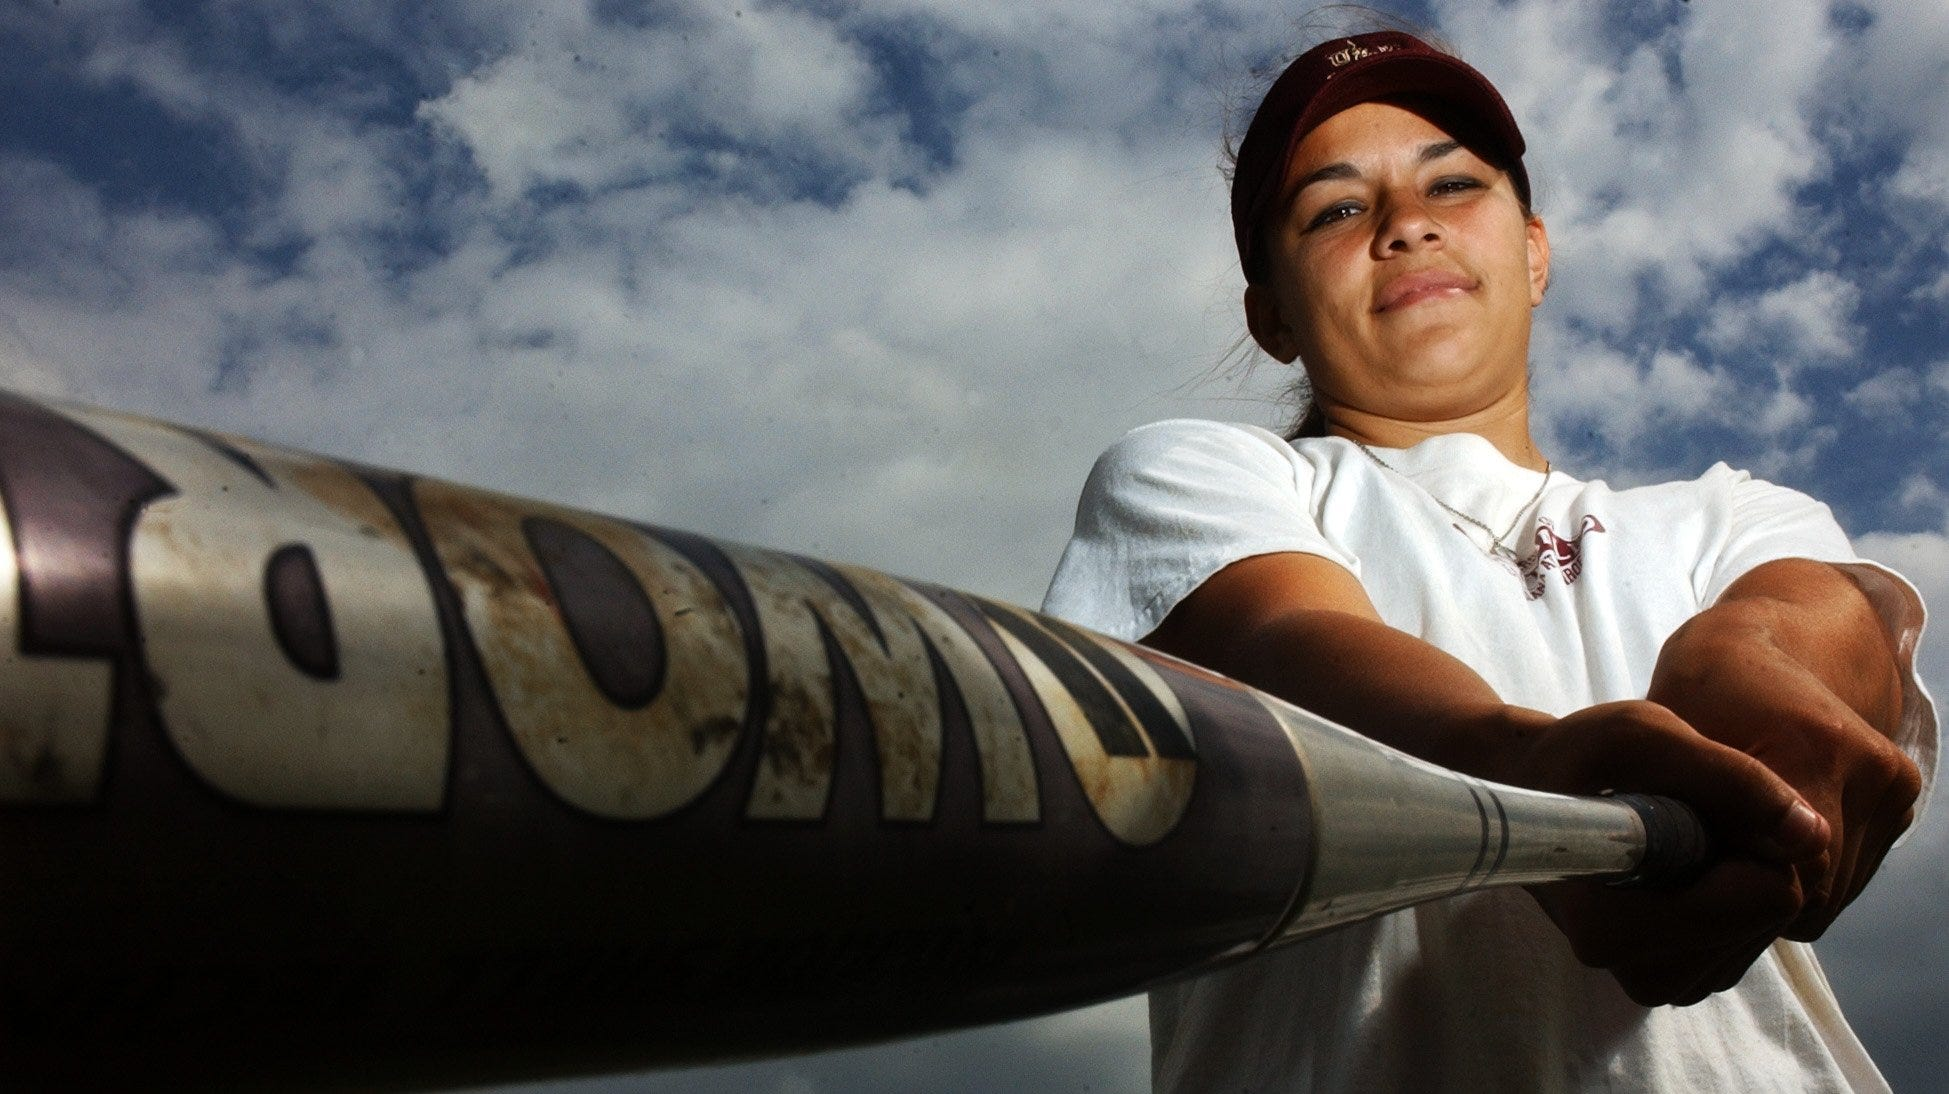 -  -ULM Softball slugger Casey Goodman has set the school RBI record and is closing in on the home run record. Goodman is pictured here Tuesday Mar. 25, 2003. MICHAEL DUNLAP/The News-Star / ftp=mdulmslugger0325.jpg